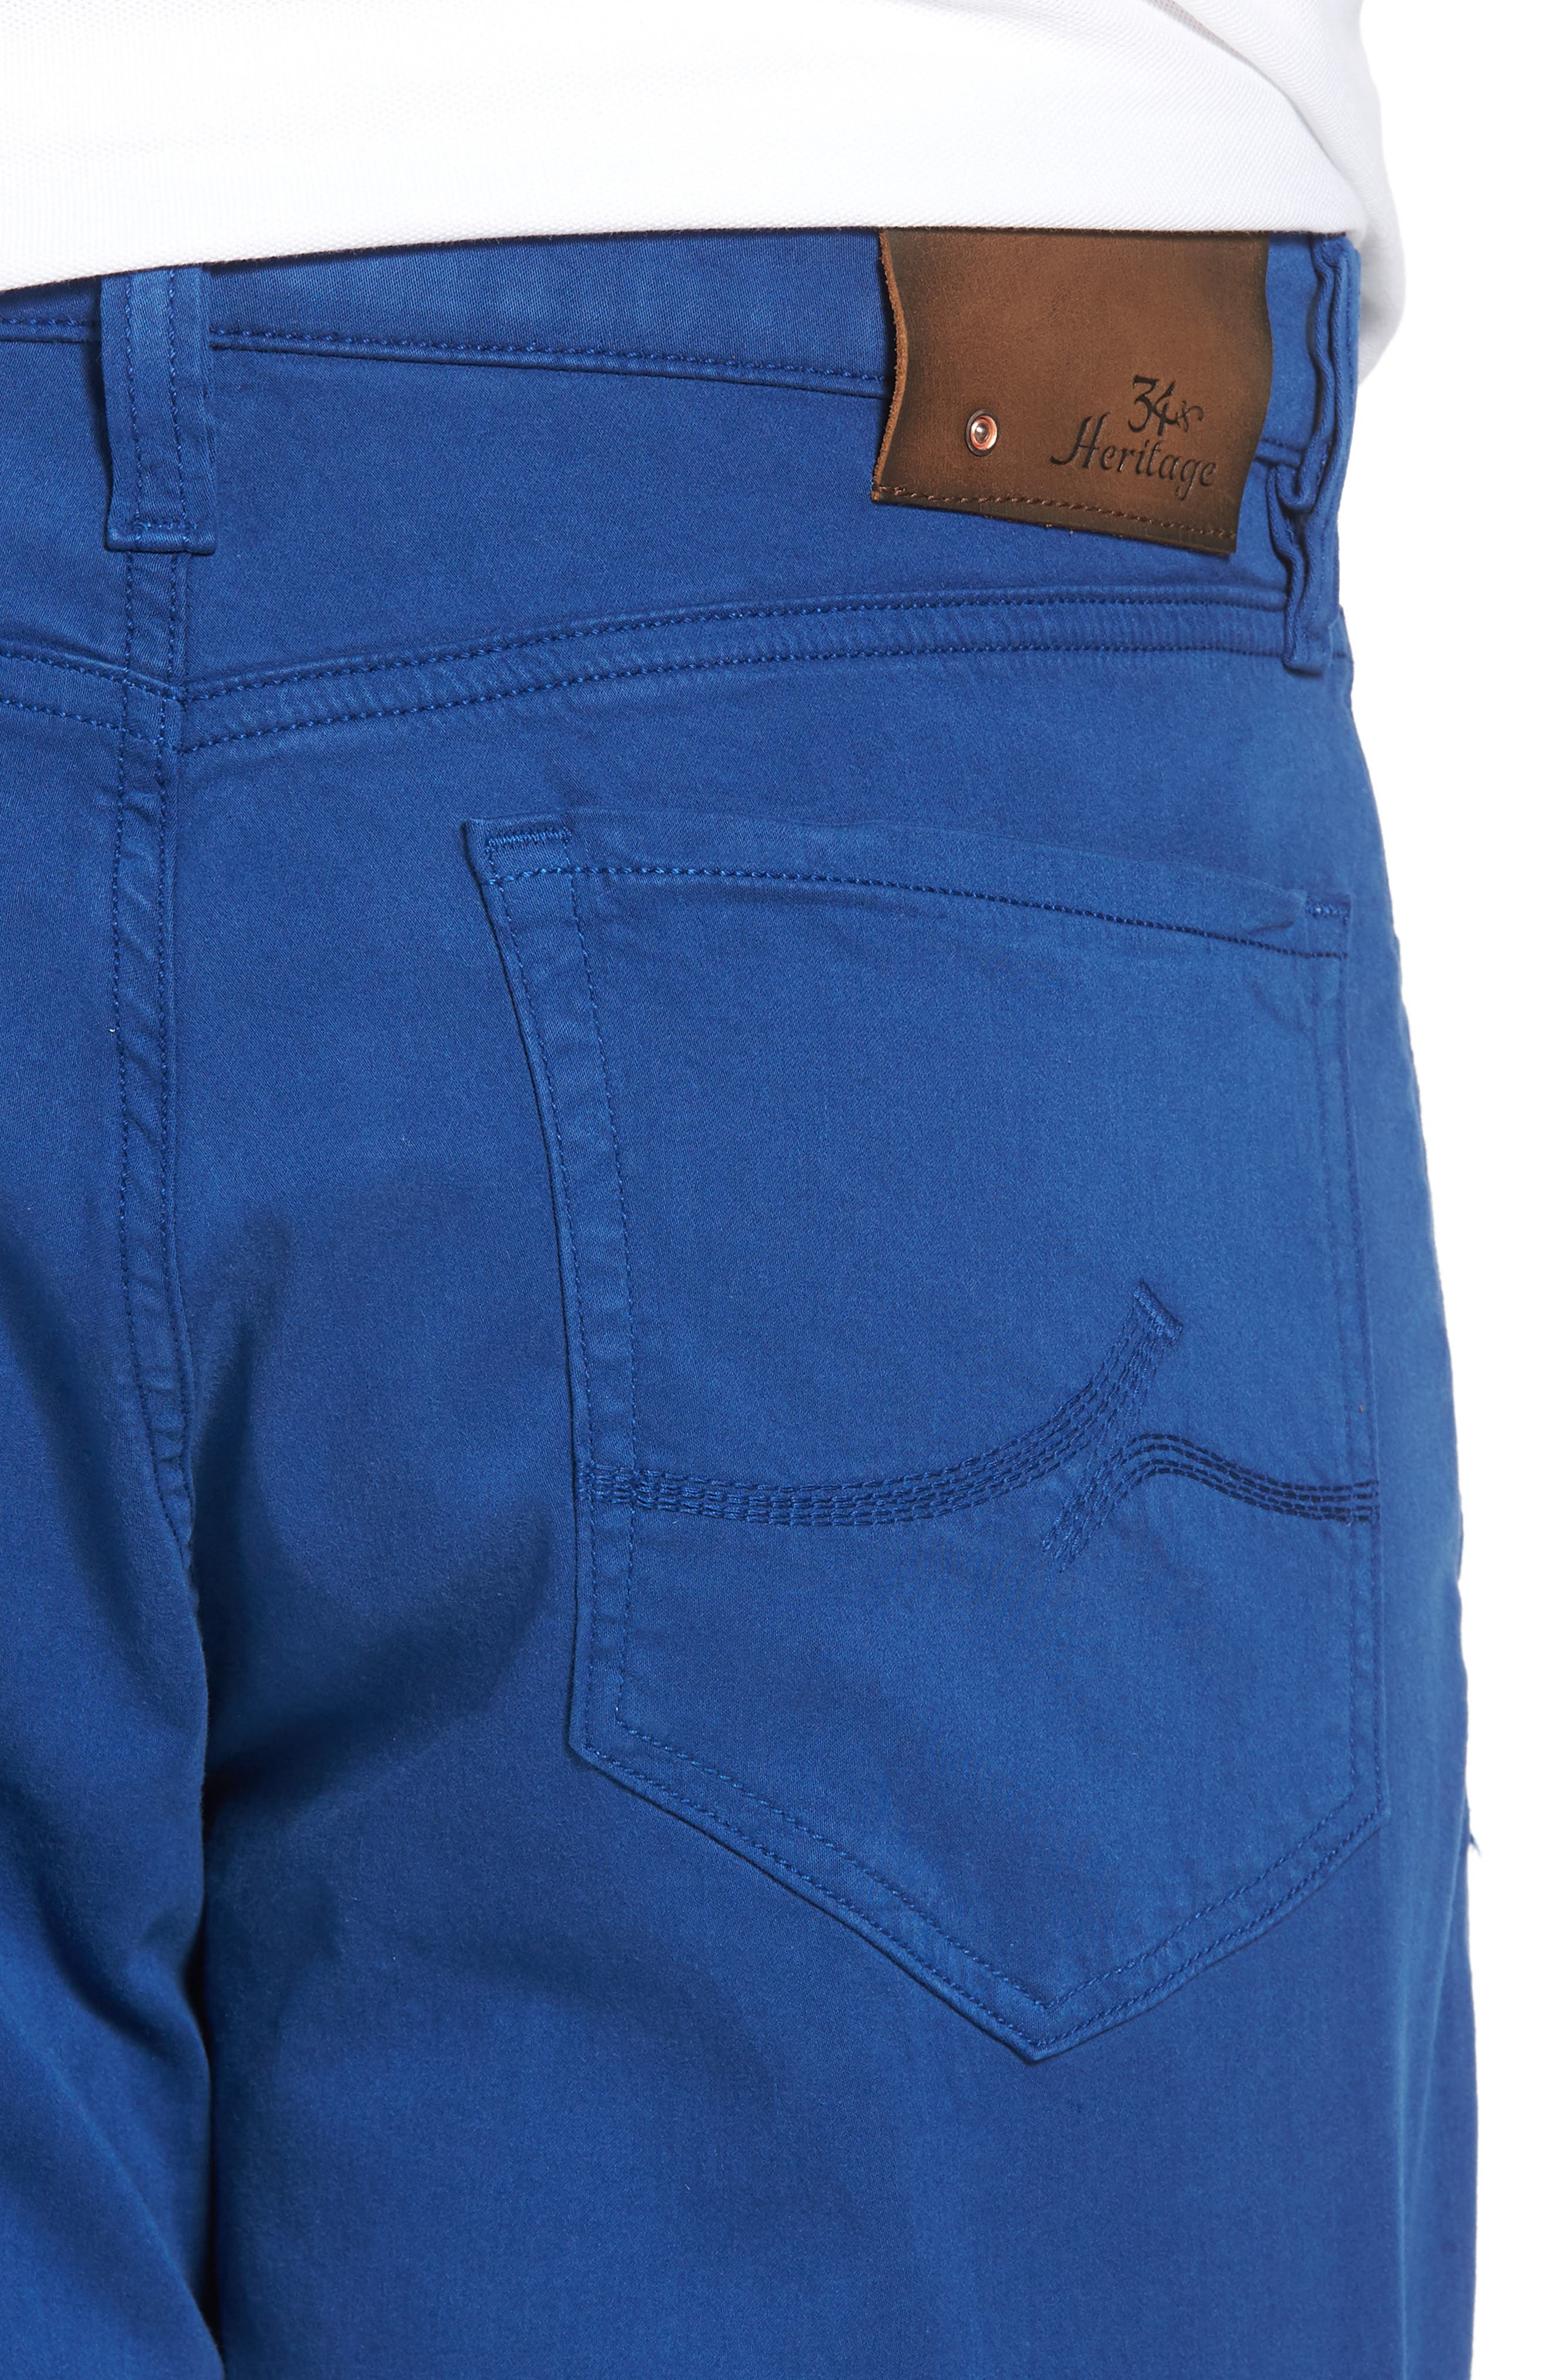 Charisma Relaxed Fit Jeans,                             Alternate thumbnail 4, color,                             ROYAL TWILL